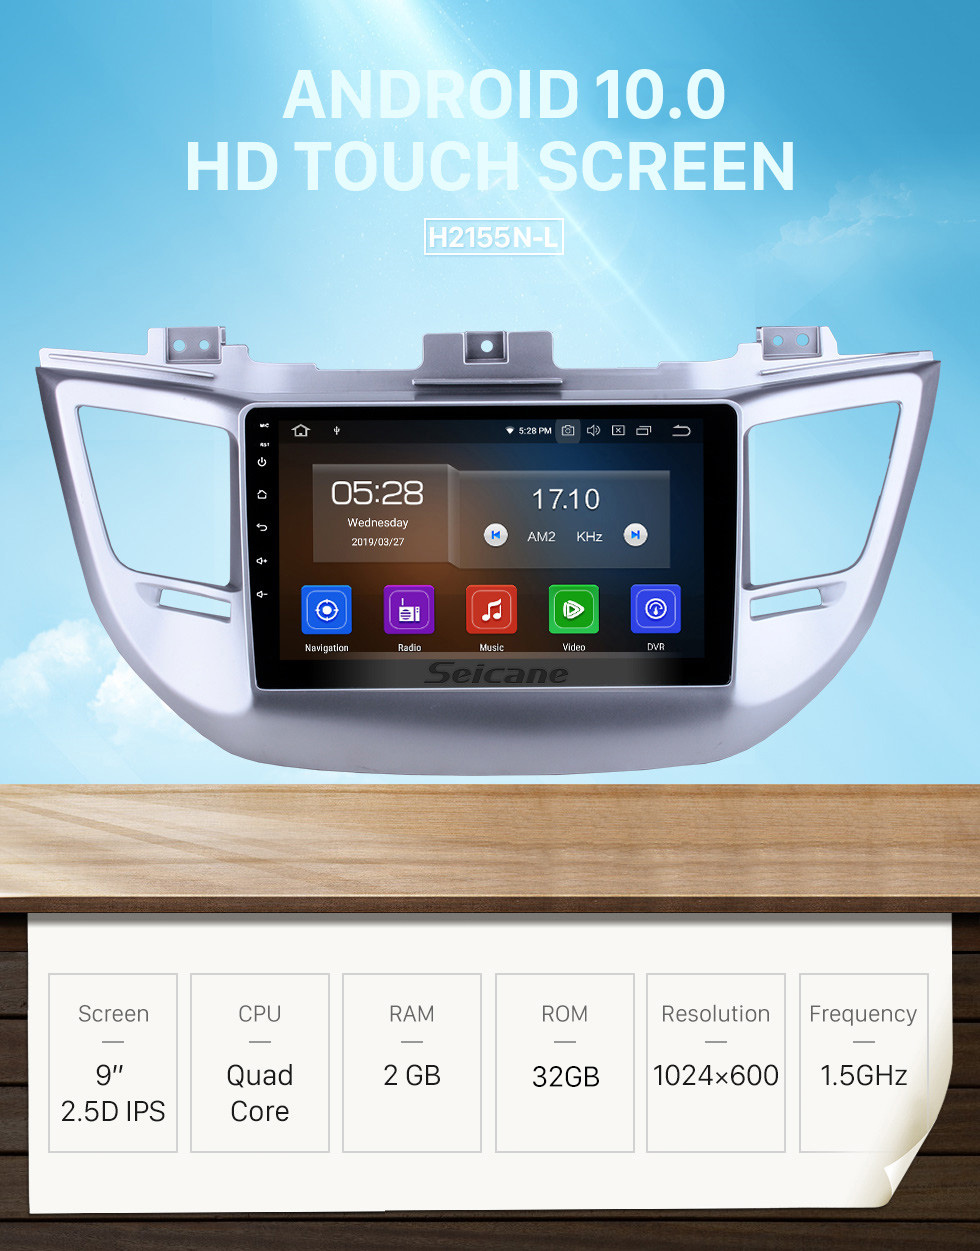 Seicane Aftermarket Radio Android 10.0 9 Inch HD Touchscreen Head Unit For 2014 2015 2016 Hyundai Tucson IX35 Car Stereo GPS Navigation System Bluetooth Phone WIFI Support OBDII DVR 1080P Video Steering Wheel Control Mirror Link